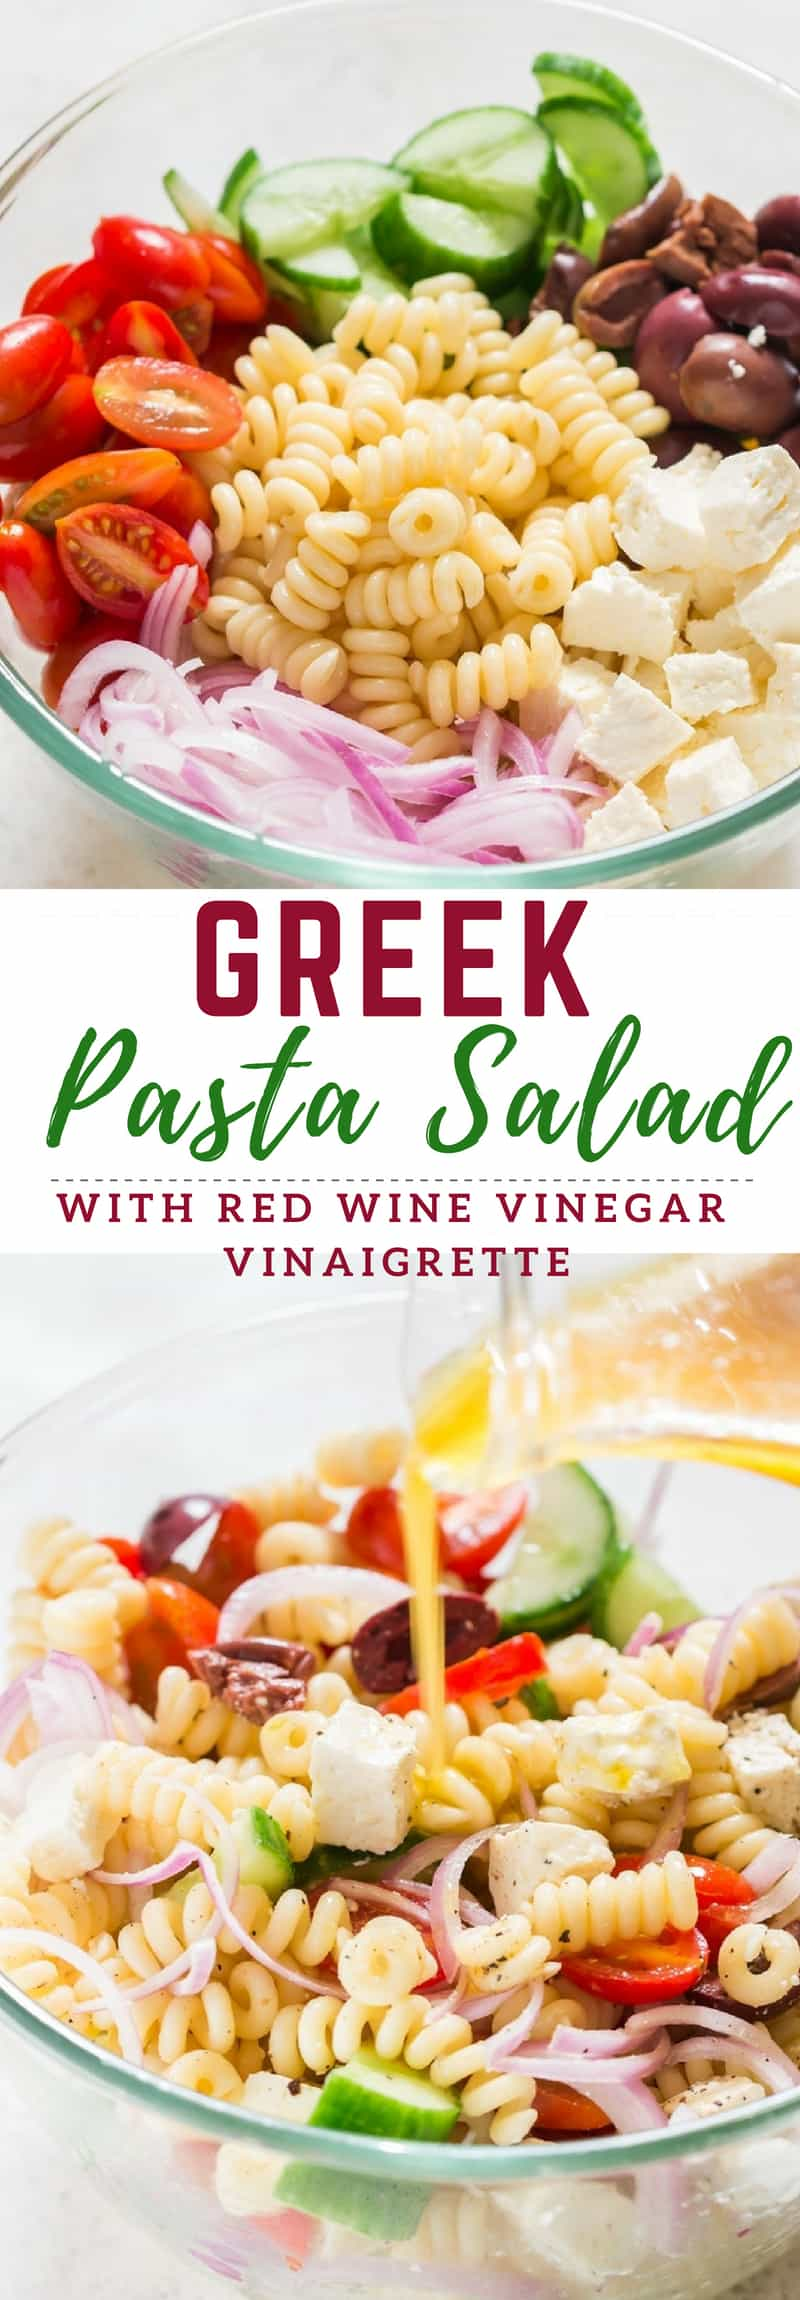 Greek pasta salad with red wine vinaigrette dressing